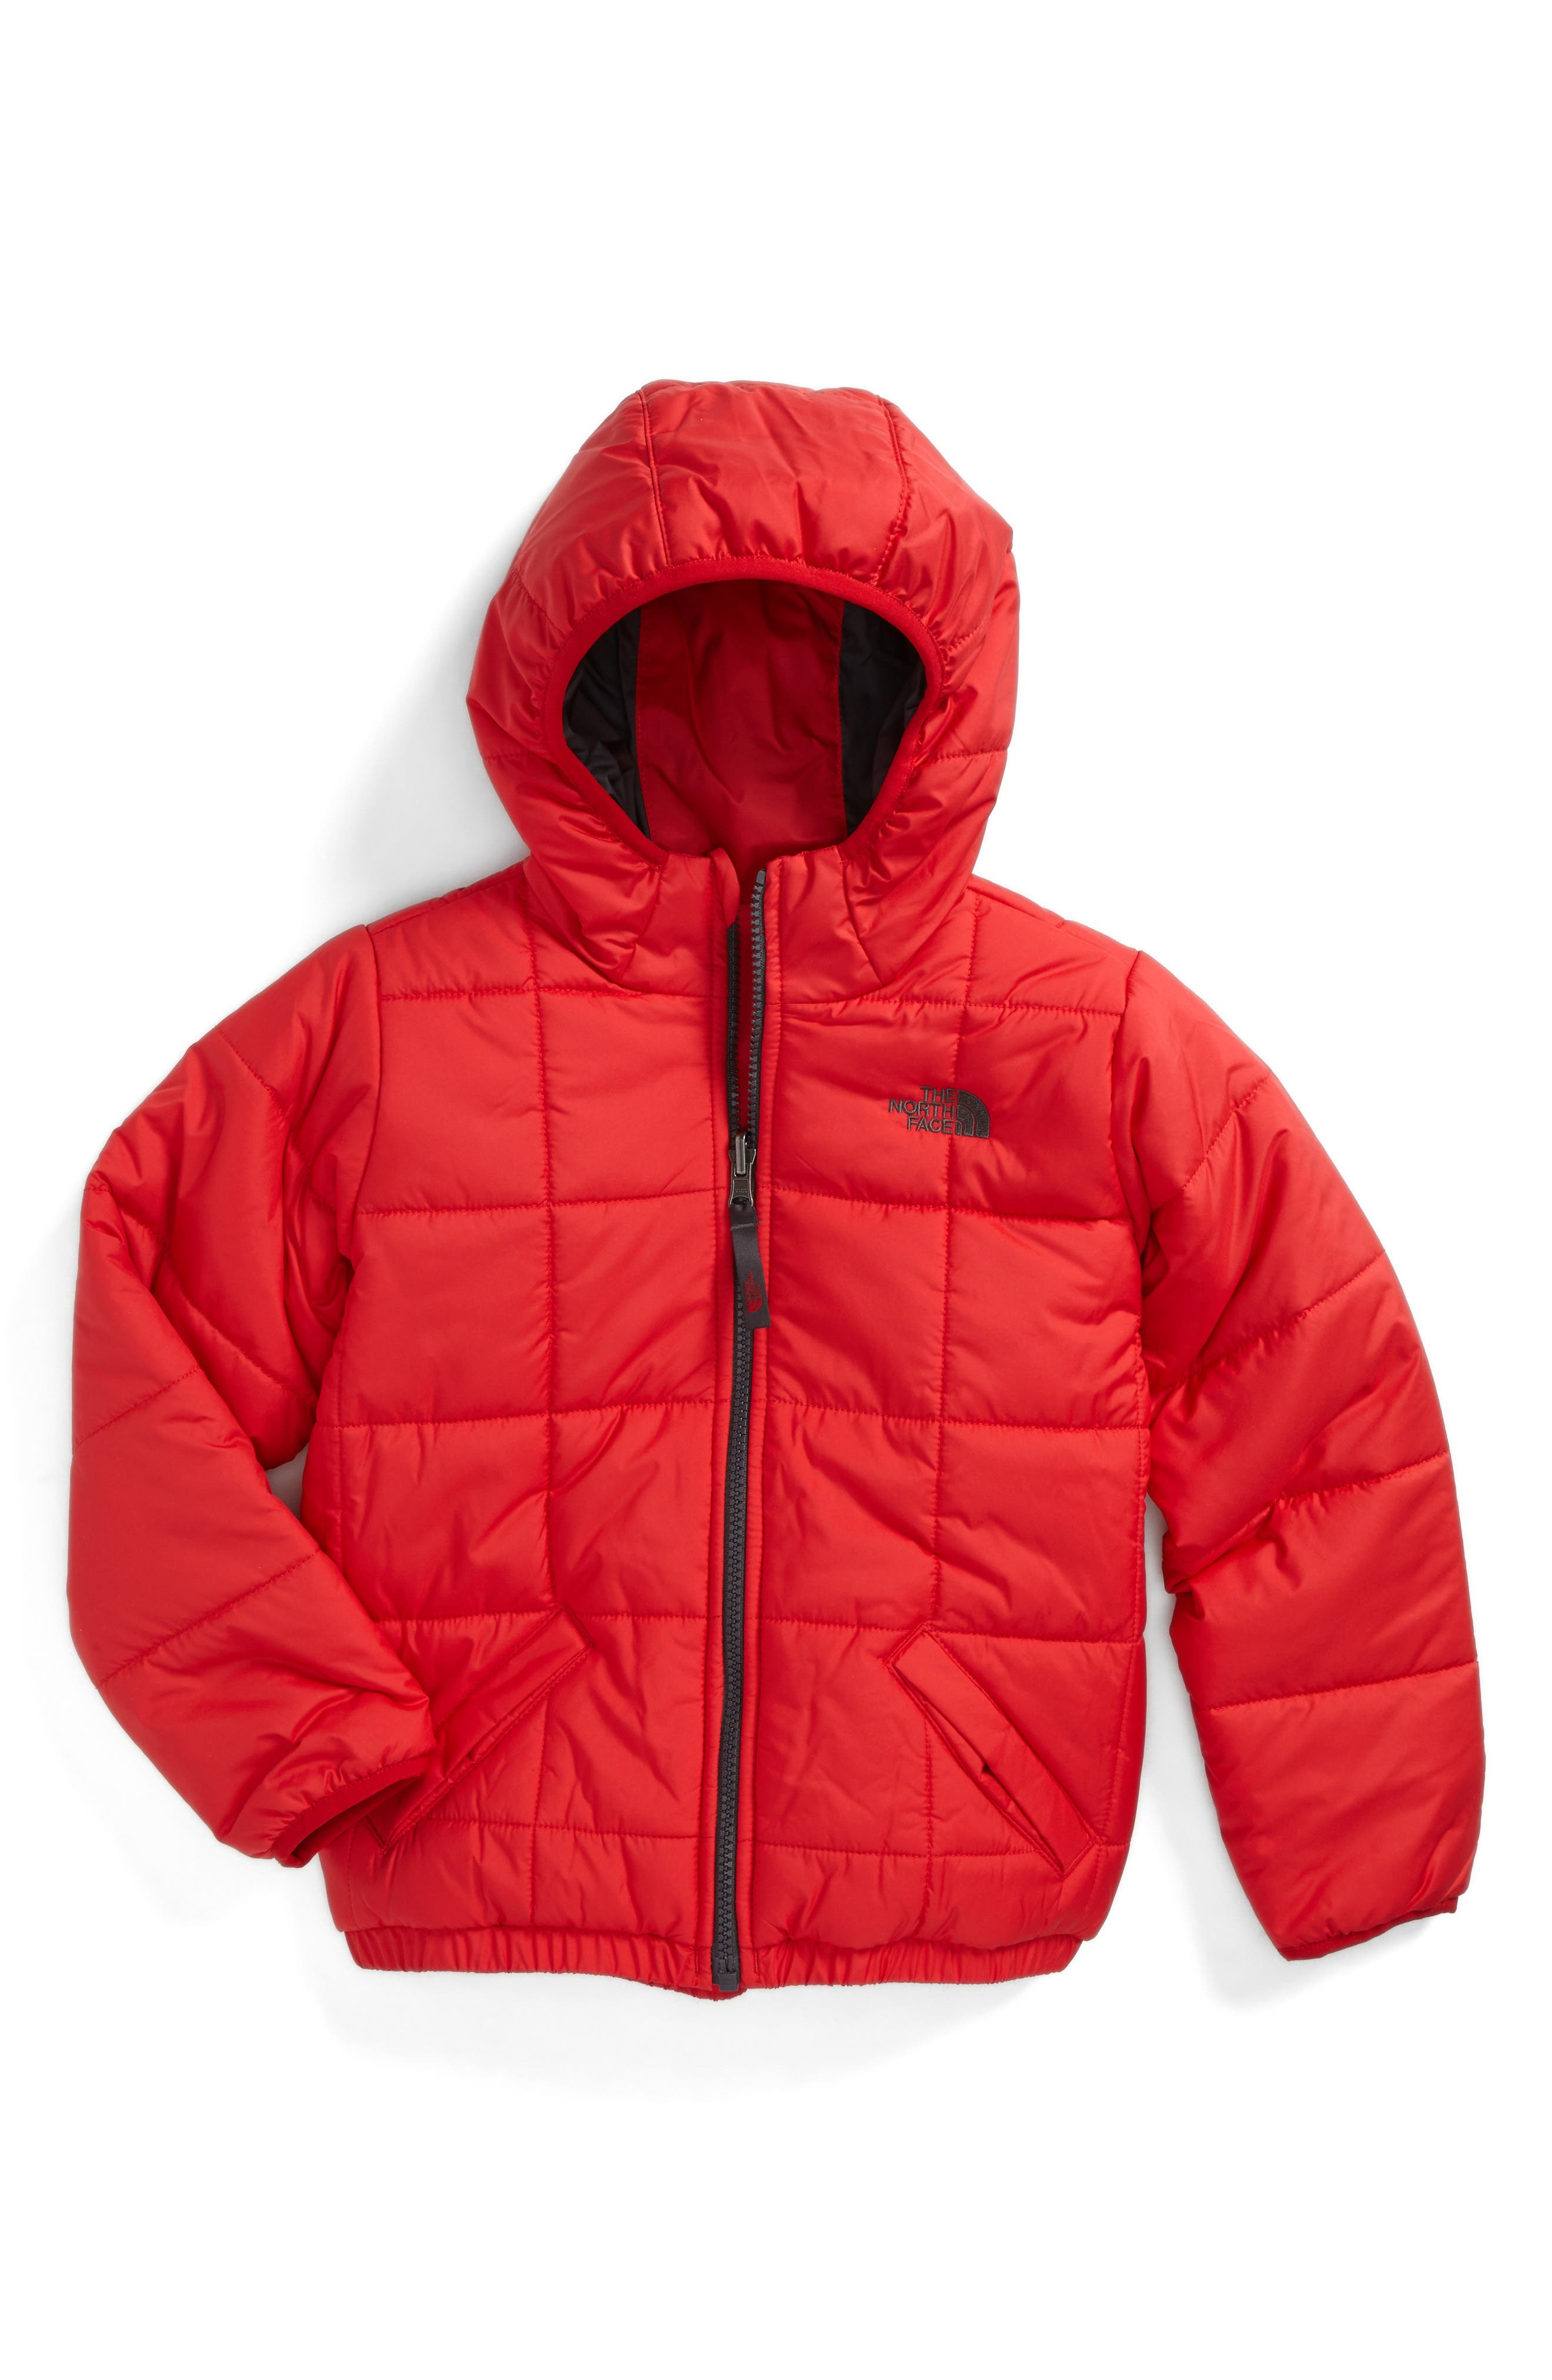 Alternate Image 1 Selected - The North Face Perrito Reversible Water Repellent Heatseeker™ Insulated Jacket (Toddler Boys & Little Boys)